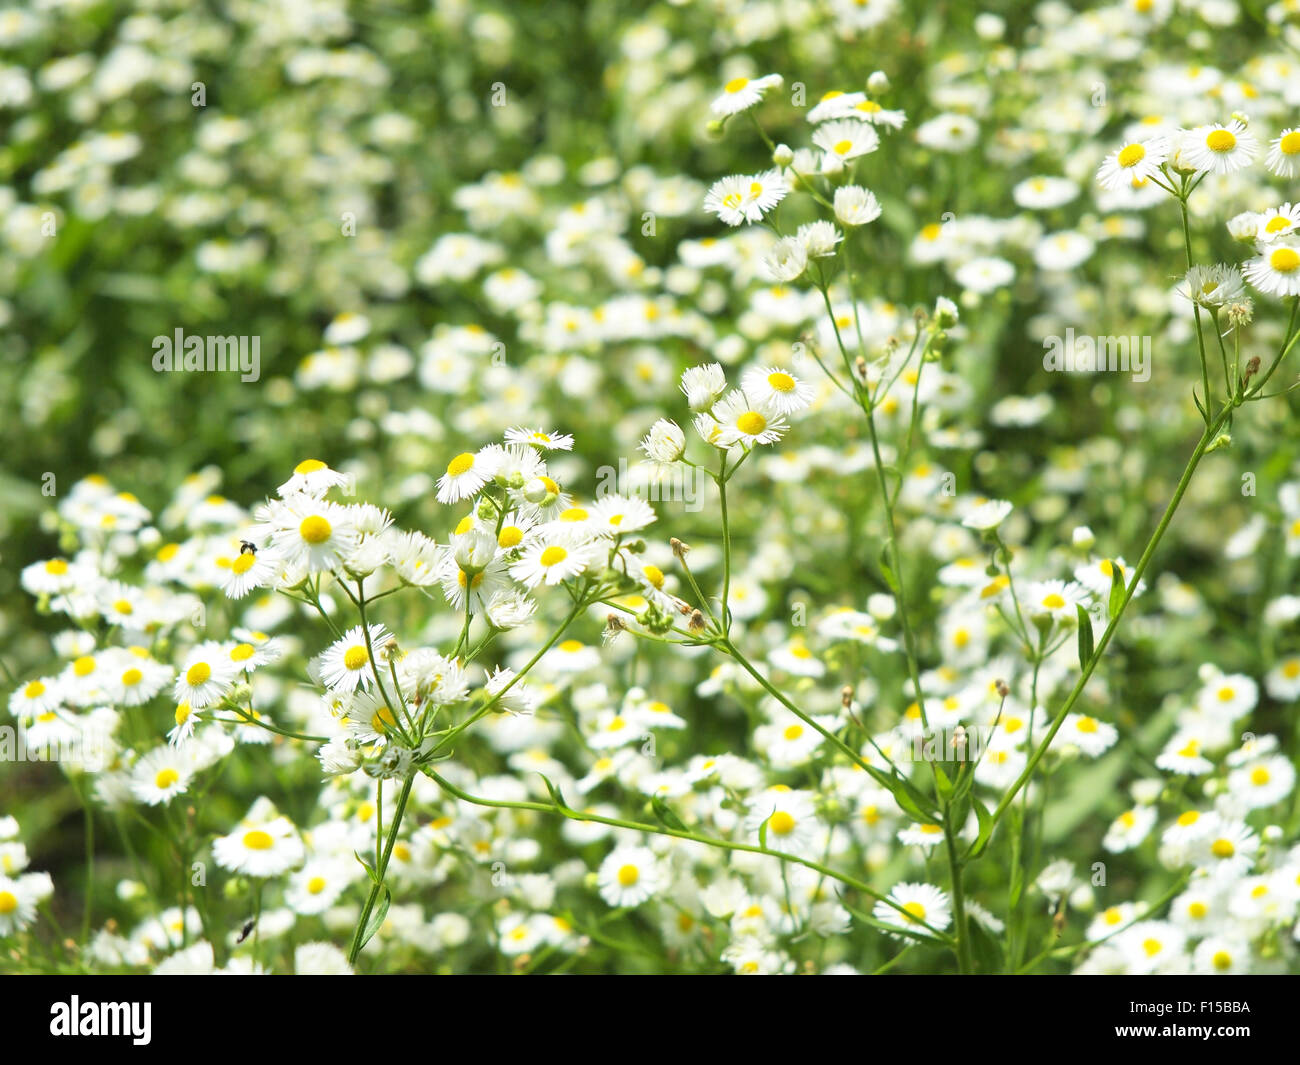 Large Field Overgrown With Small White Daisy Flowers In Green Grass